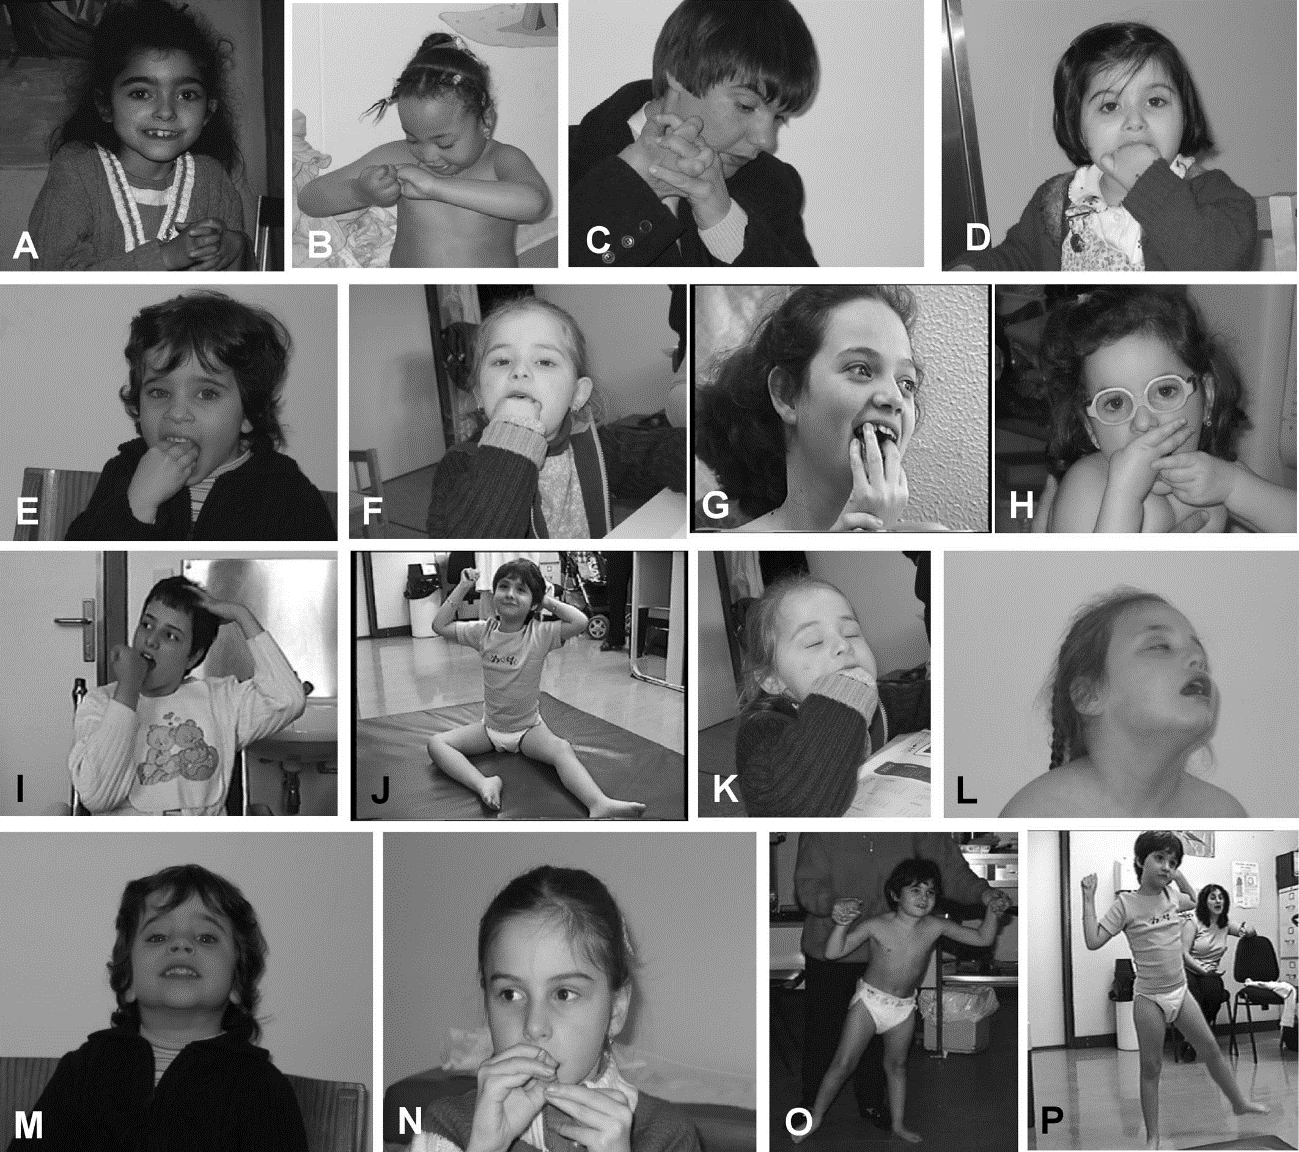 Different topographies of stereotypies in Group I Rett syndrome patients